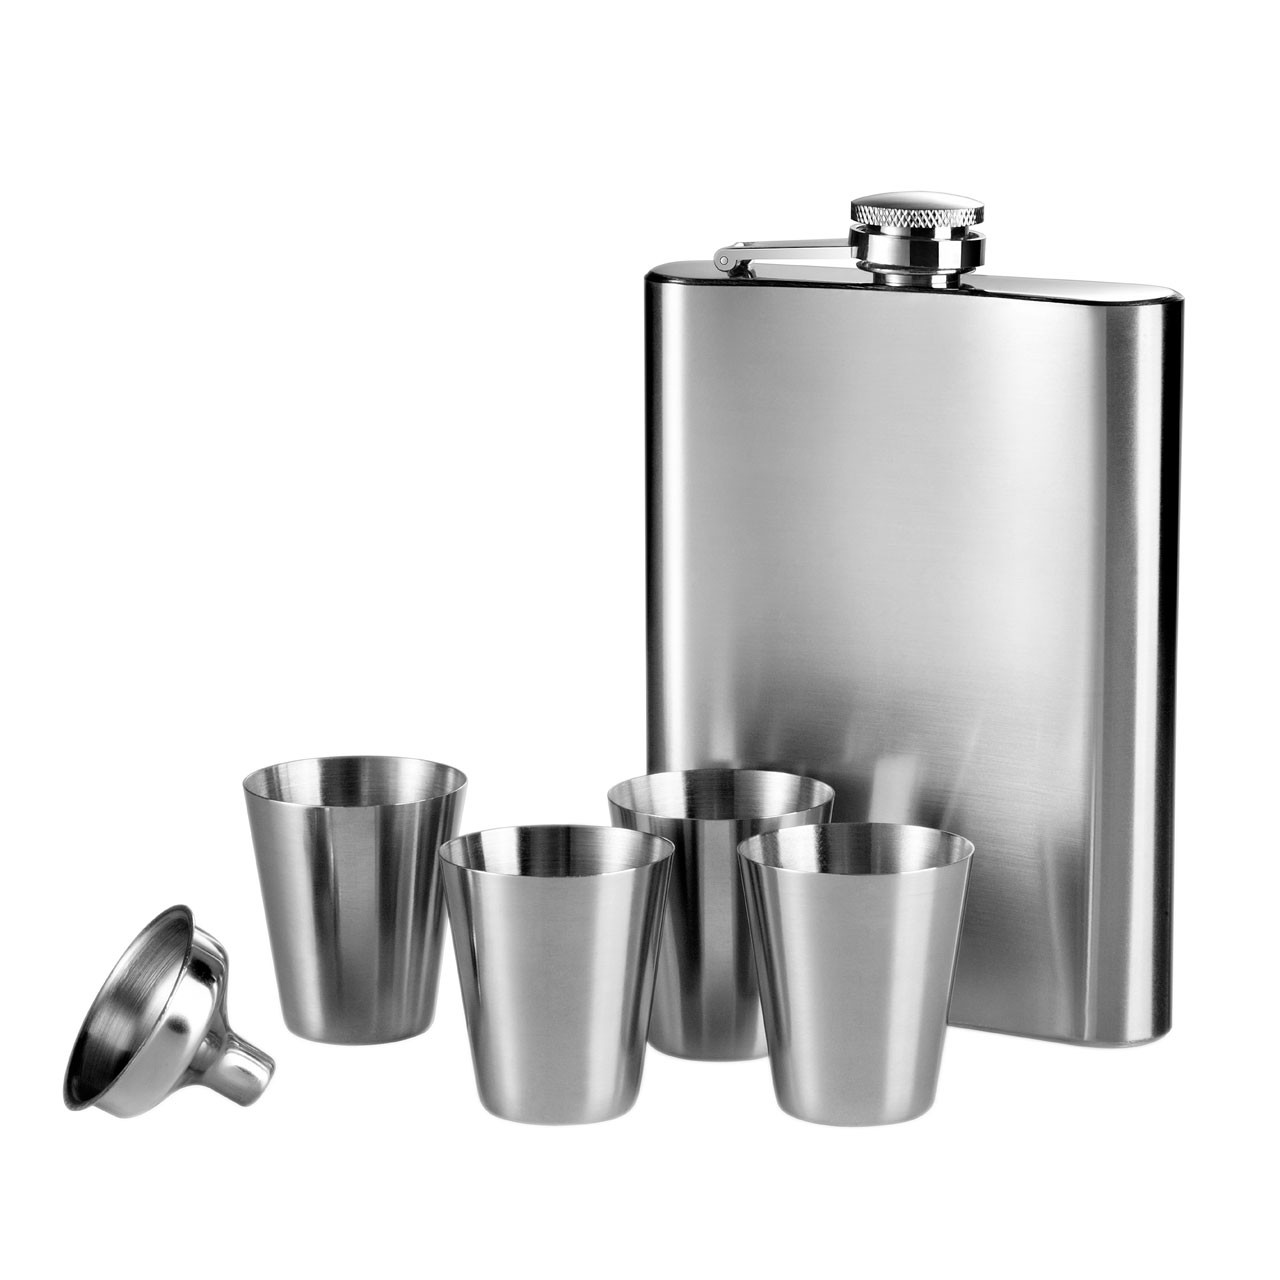 7oz Hip Flask (4xCups & Funnel) Set [Kitchen & Home]